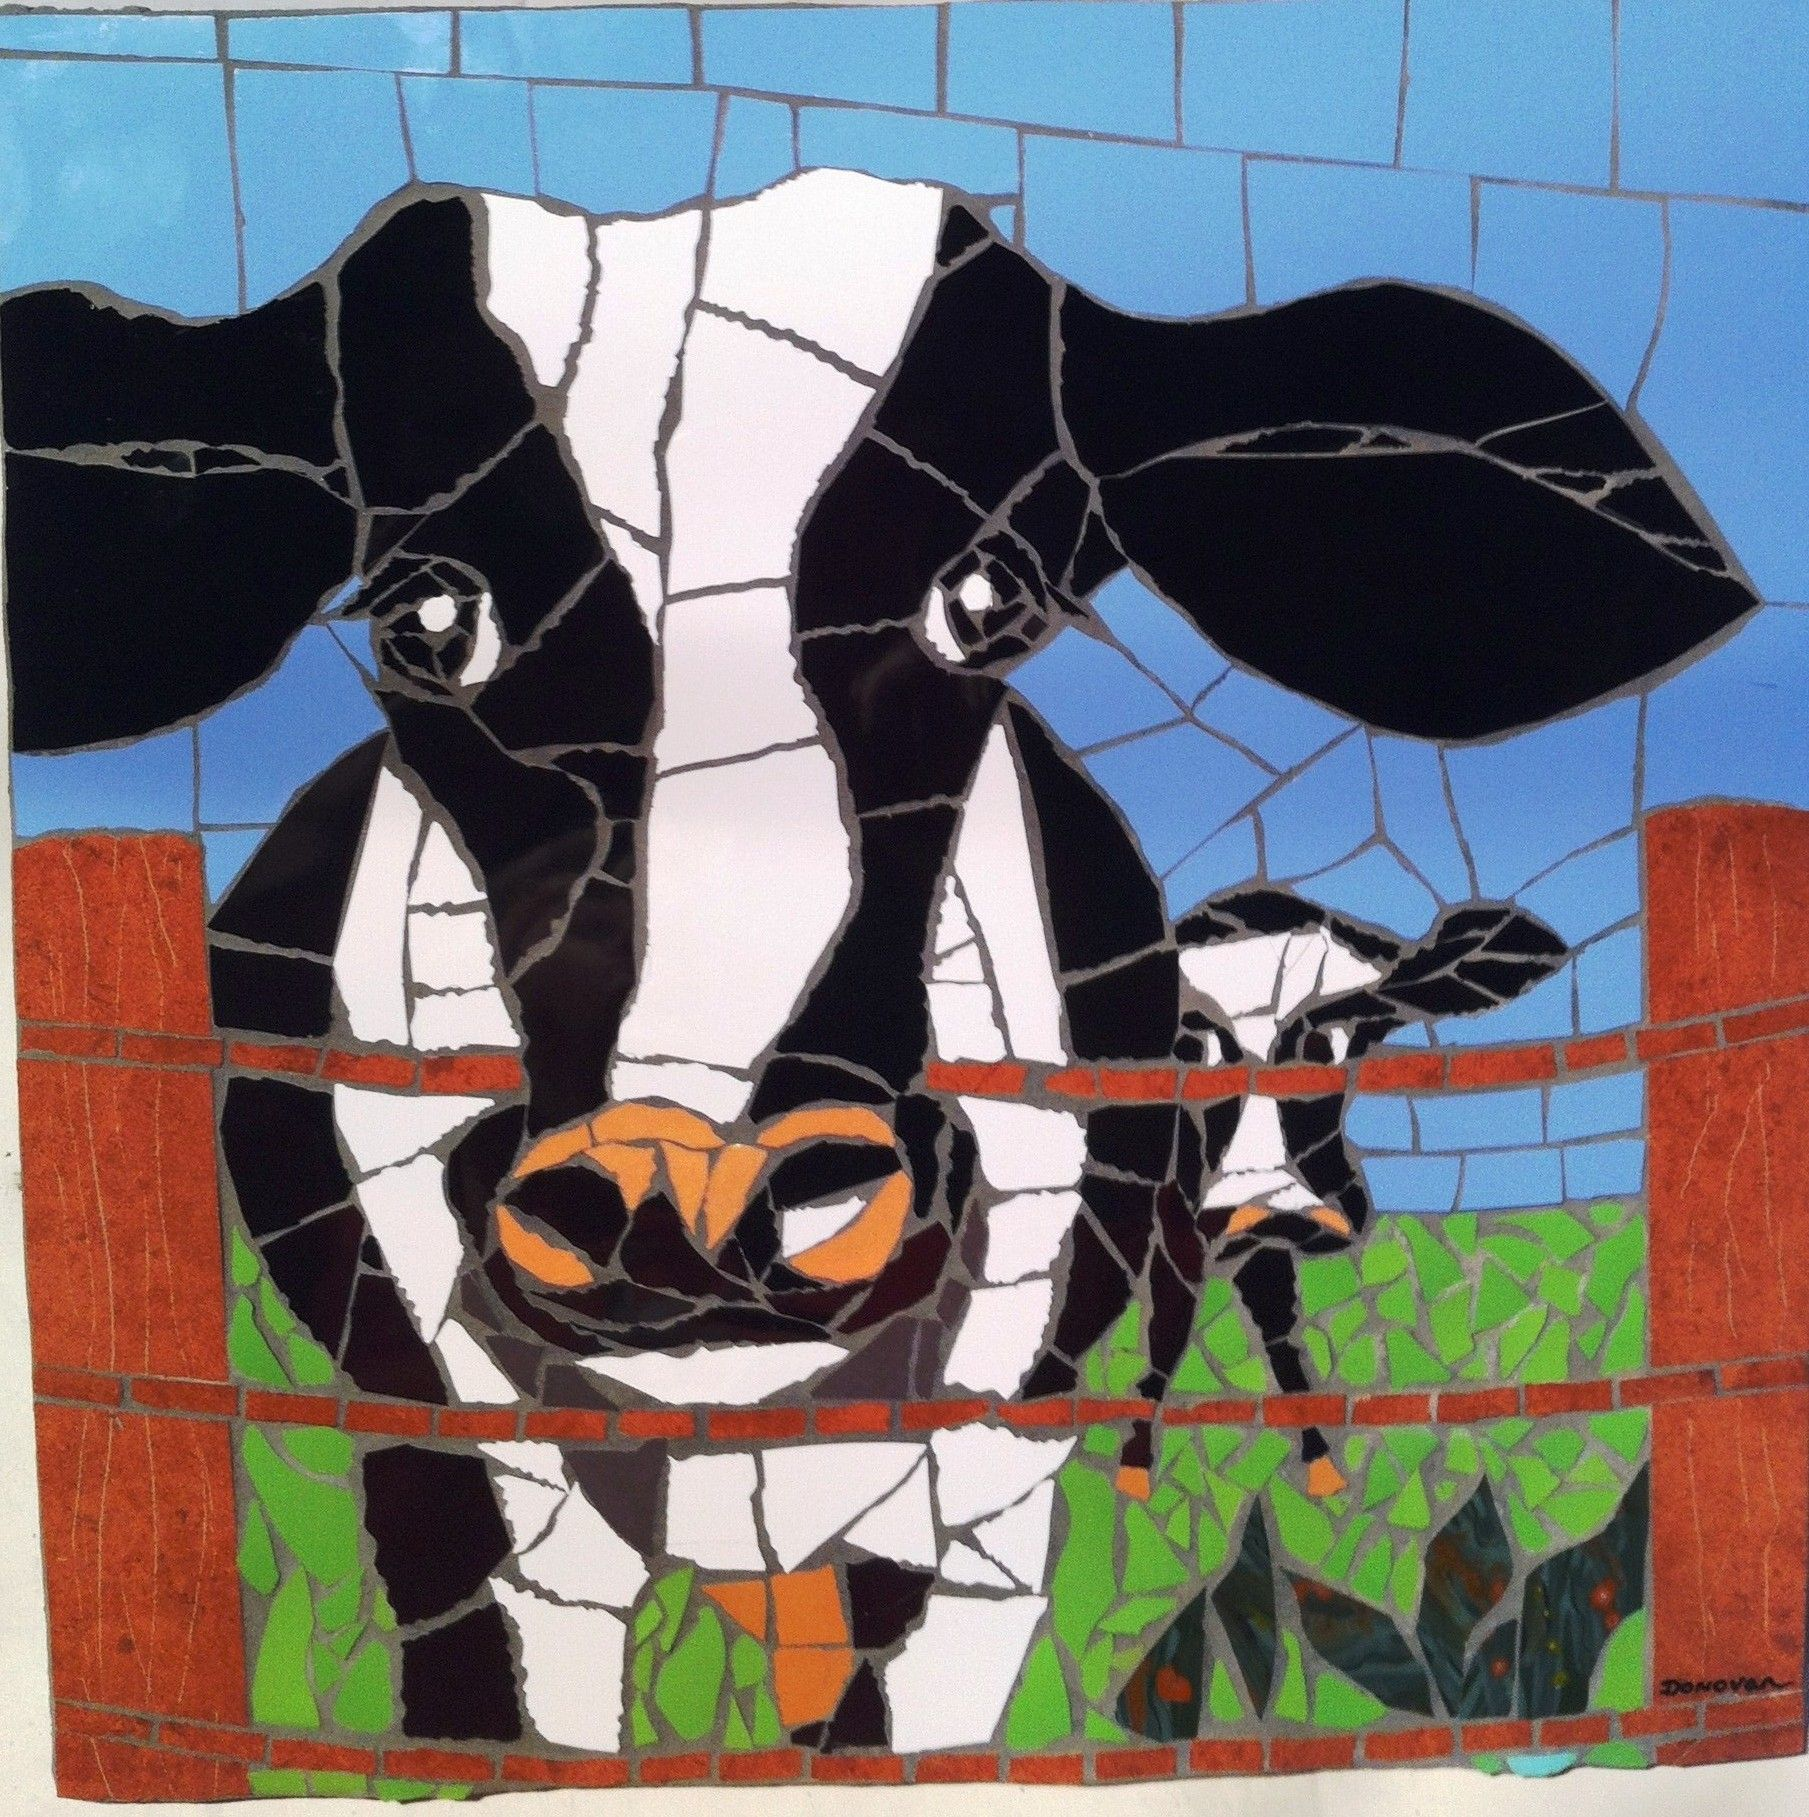 Mosaic application murals application wall panel application kitchen - Handmade Original Mosaic Art Ticklemepink Mosaics By Geraldine Donovan Suitable For Indoor And Outdoor Applications Made To Order